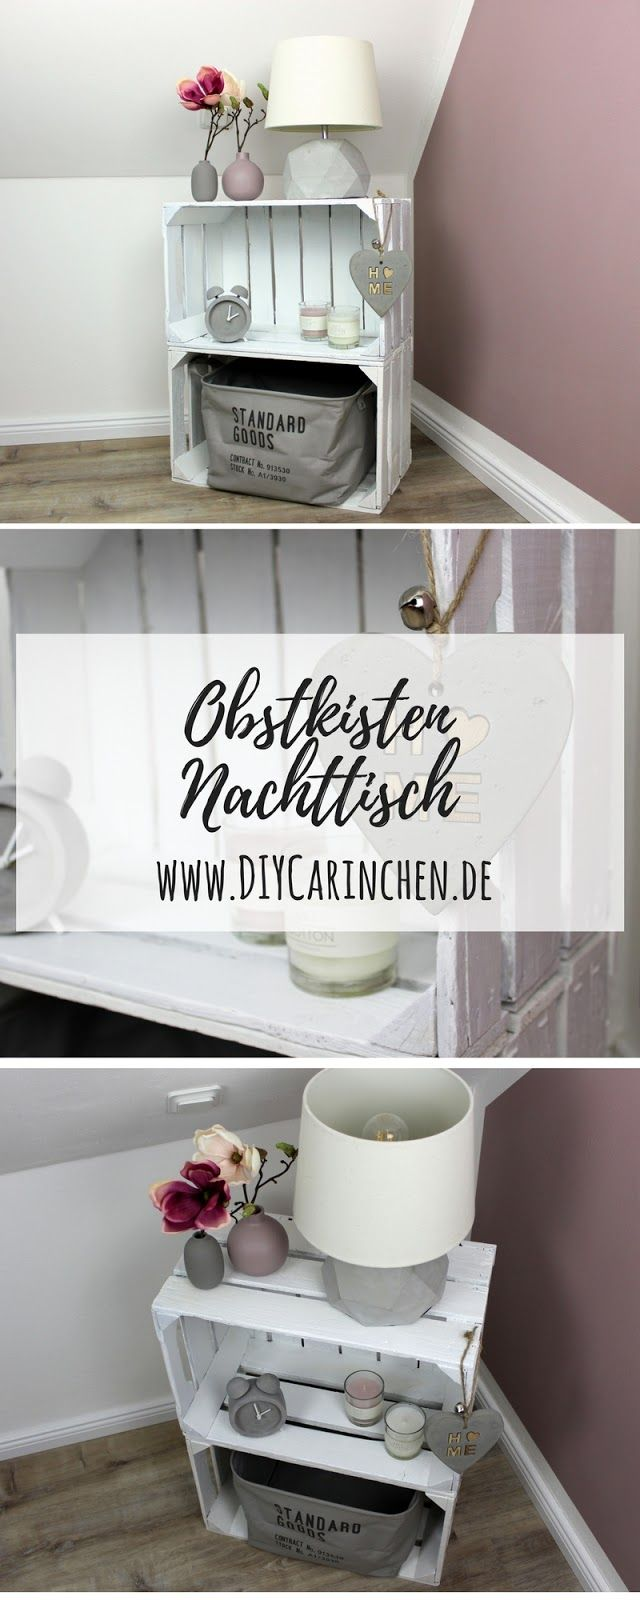 die besten 25 alte m bel ideen auf pinterest altes t r dekor g nstige schlafzimmer ideen und. Black Bedroom Furniture Sets. Home Design Ideas